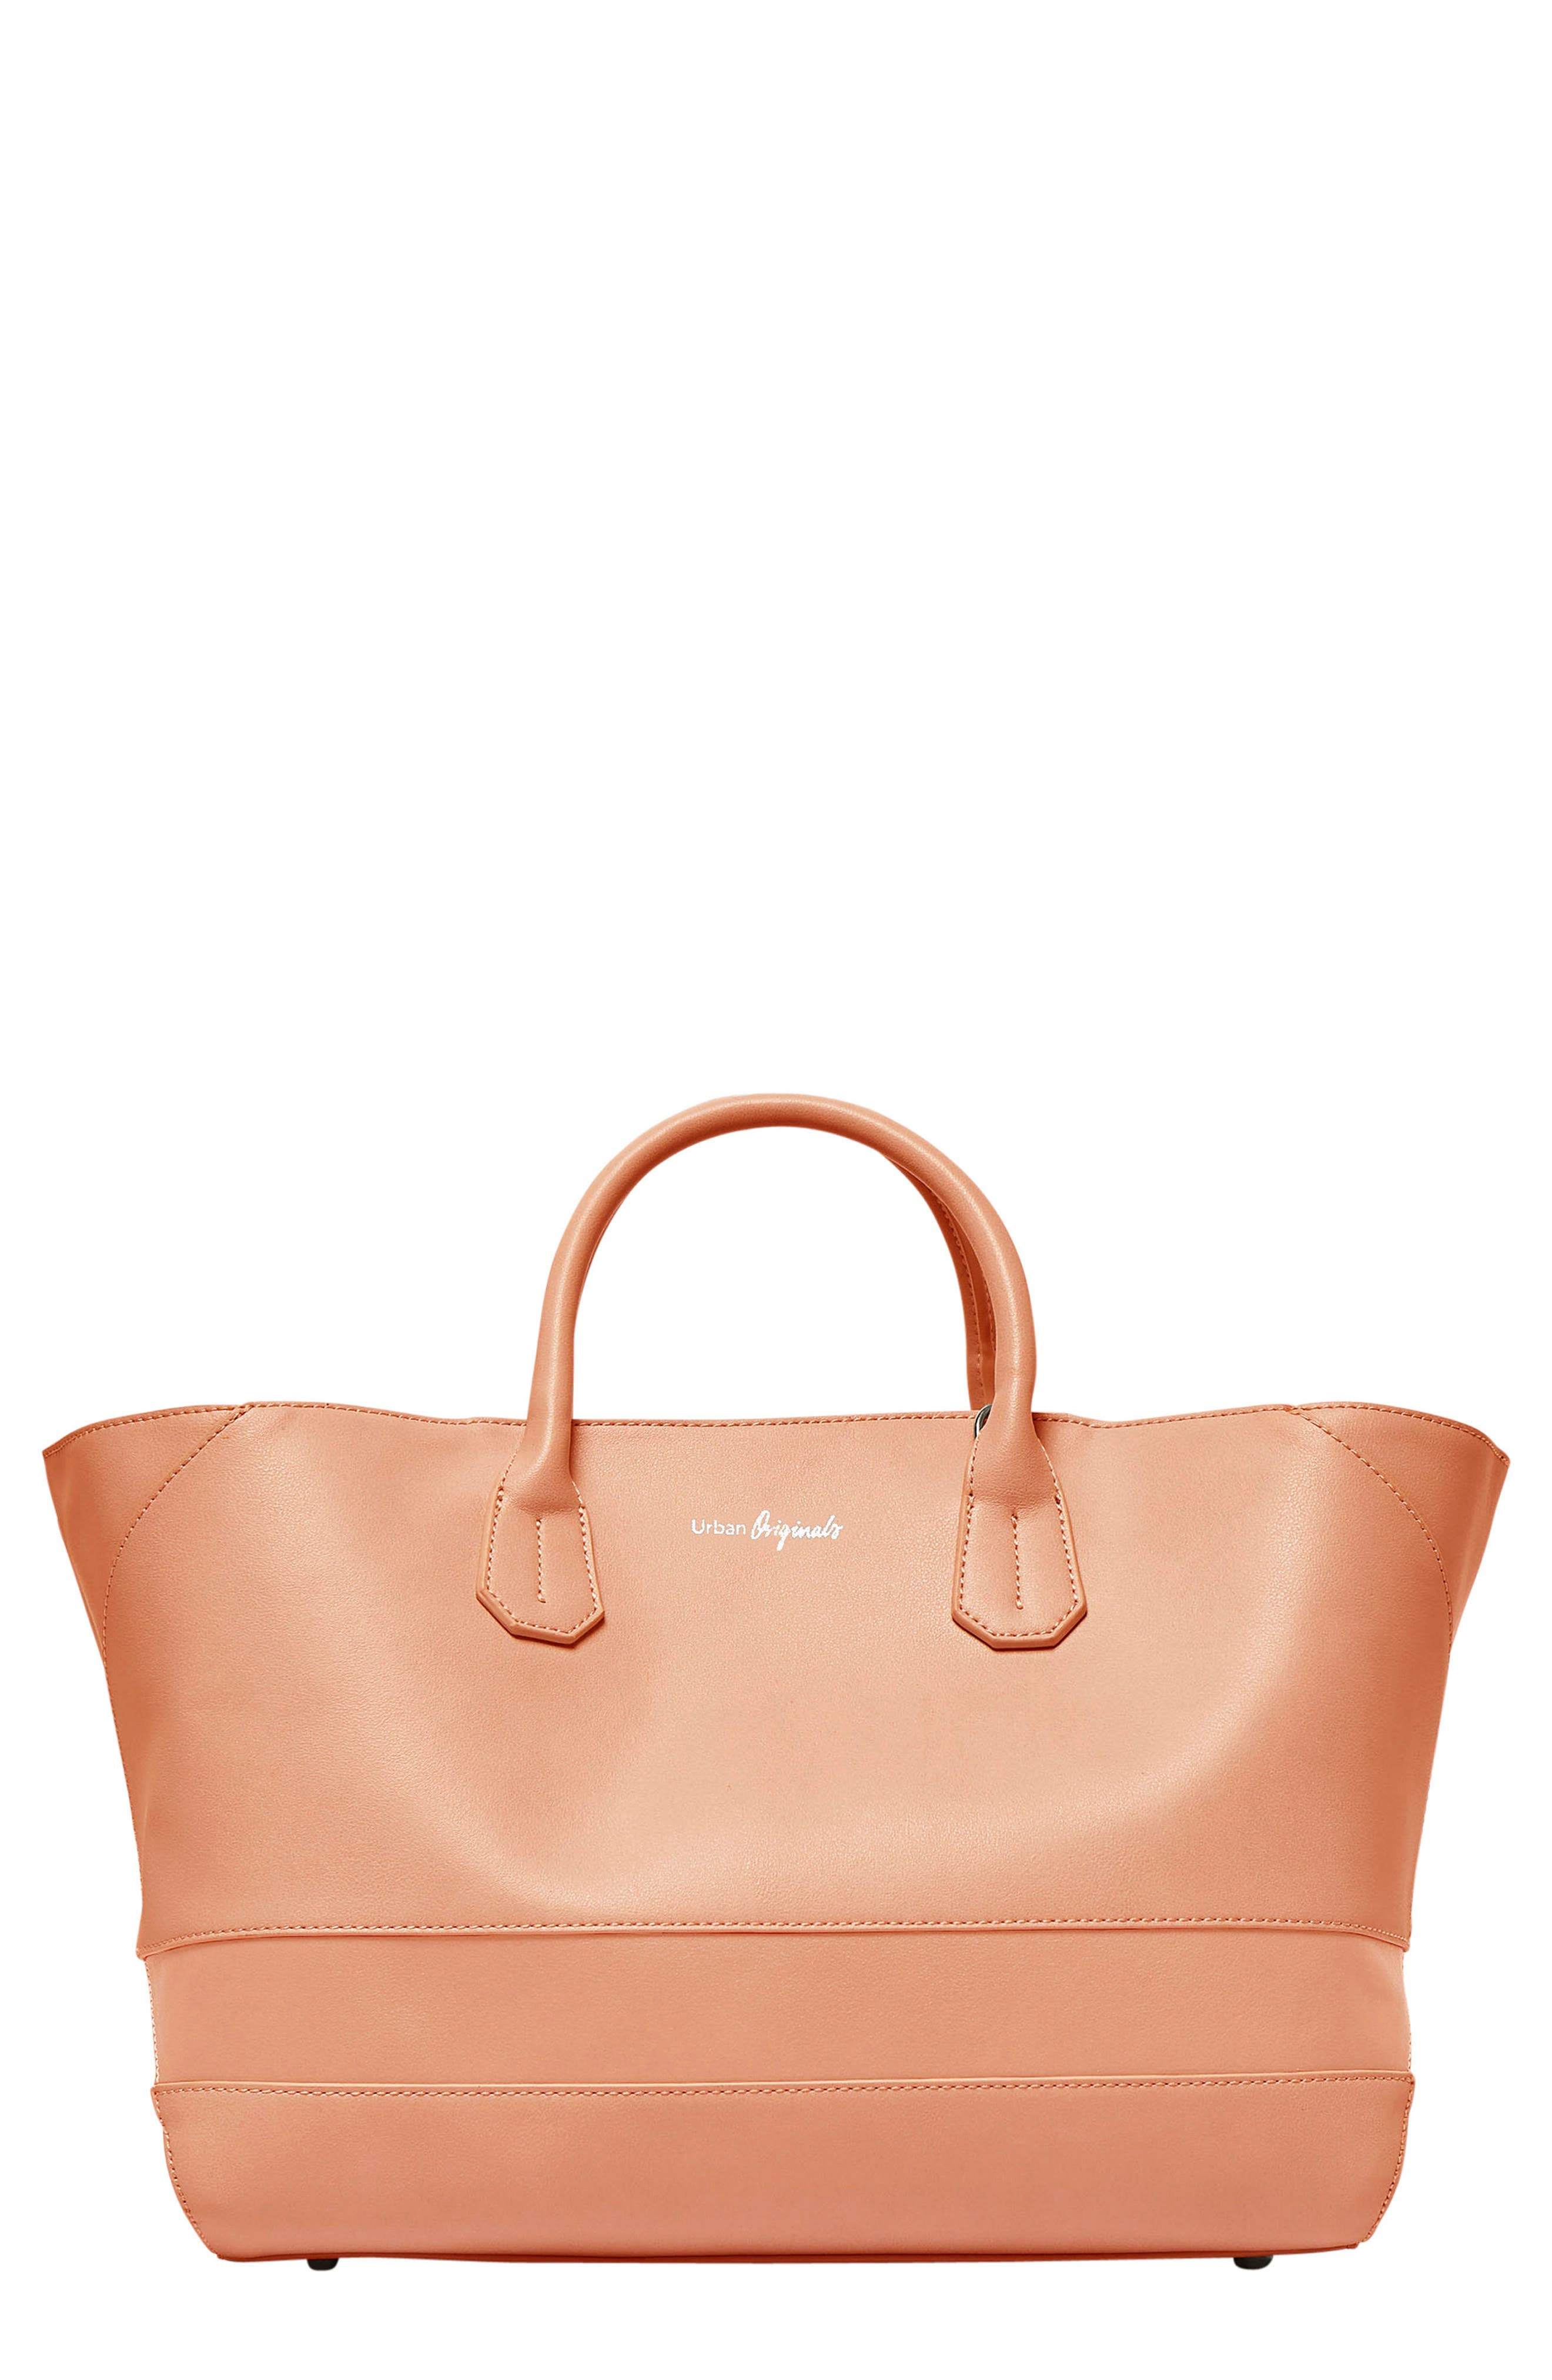 Urban Originals Heartbreaker Vegan Leather Tote